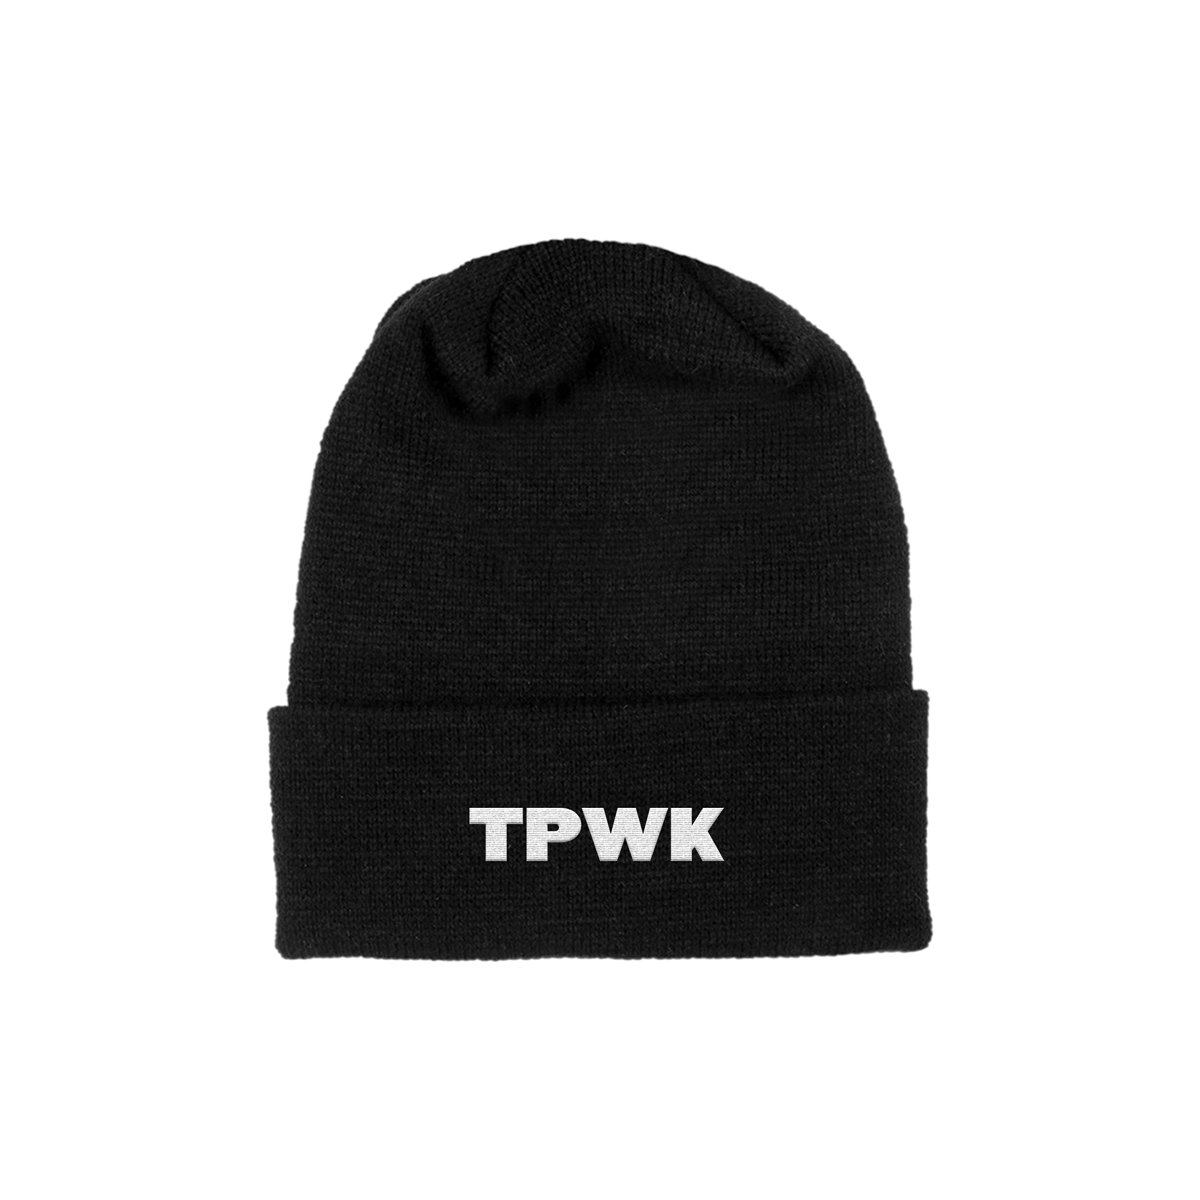 Treat People With Kindness Cuff Beanie + Digital Download - Harry Styles EU